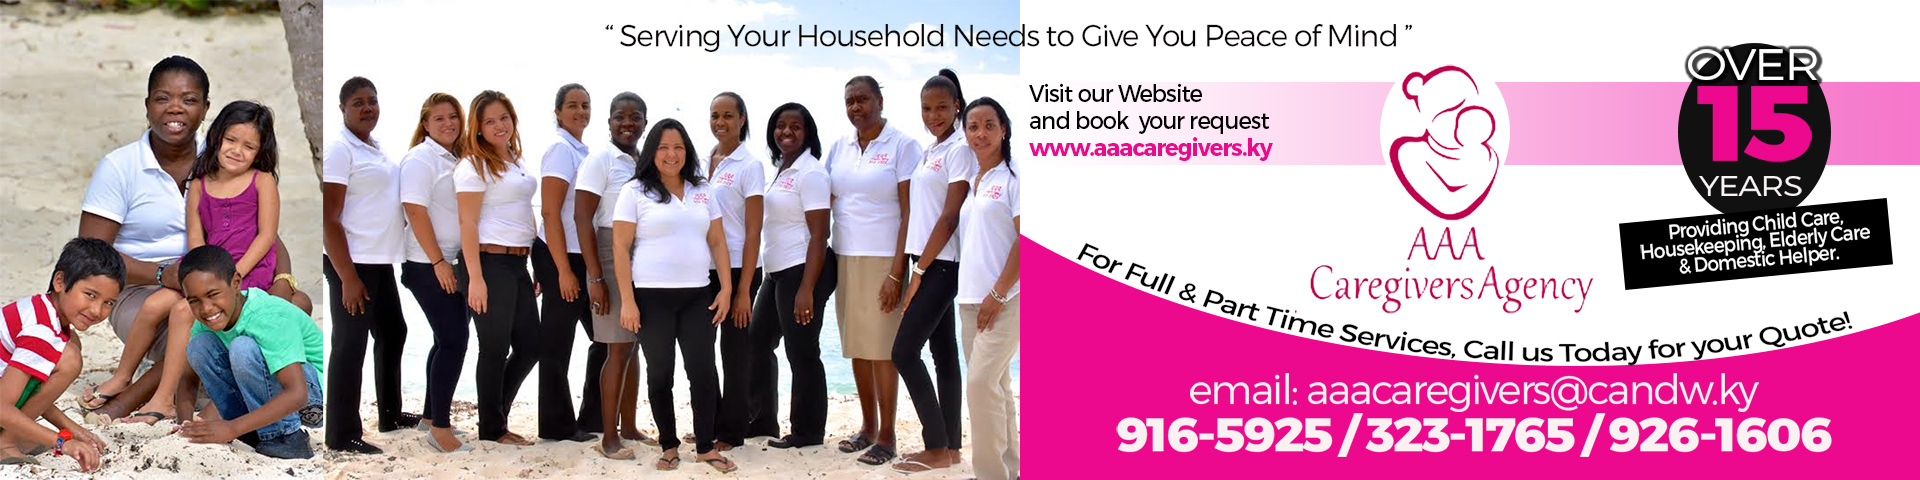 Check out the latest job openings by AAA caregivers agency